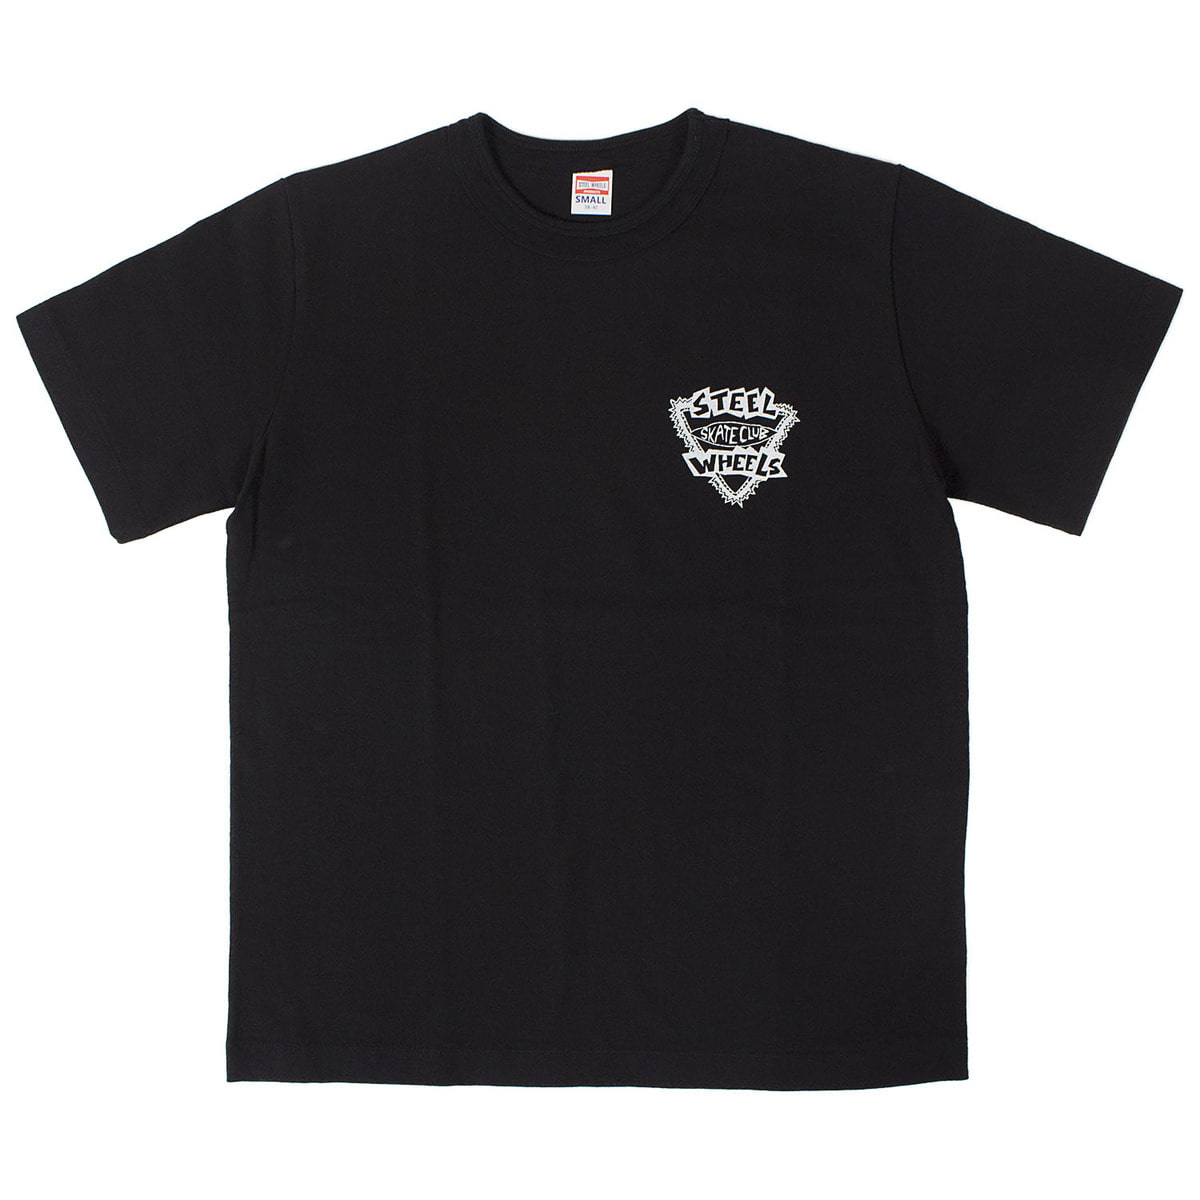 Club T-Shirts (Black)